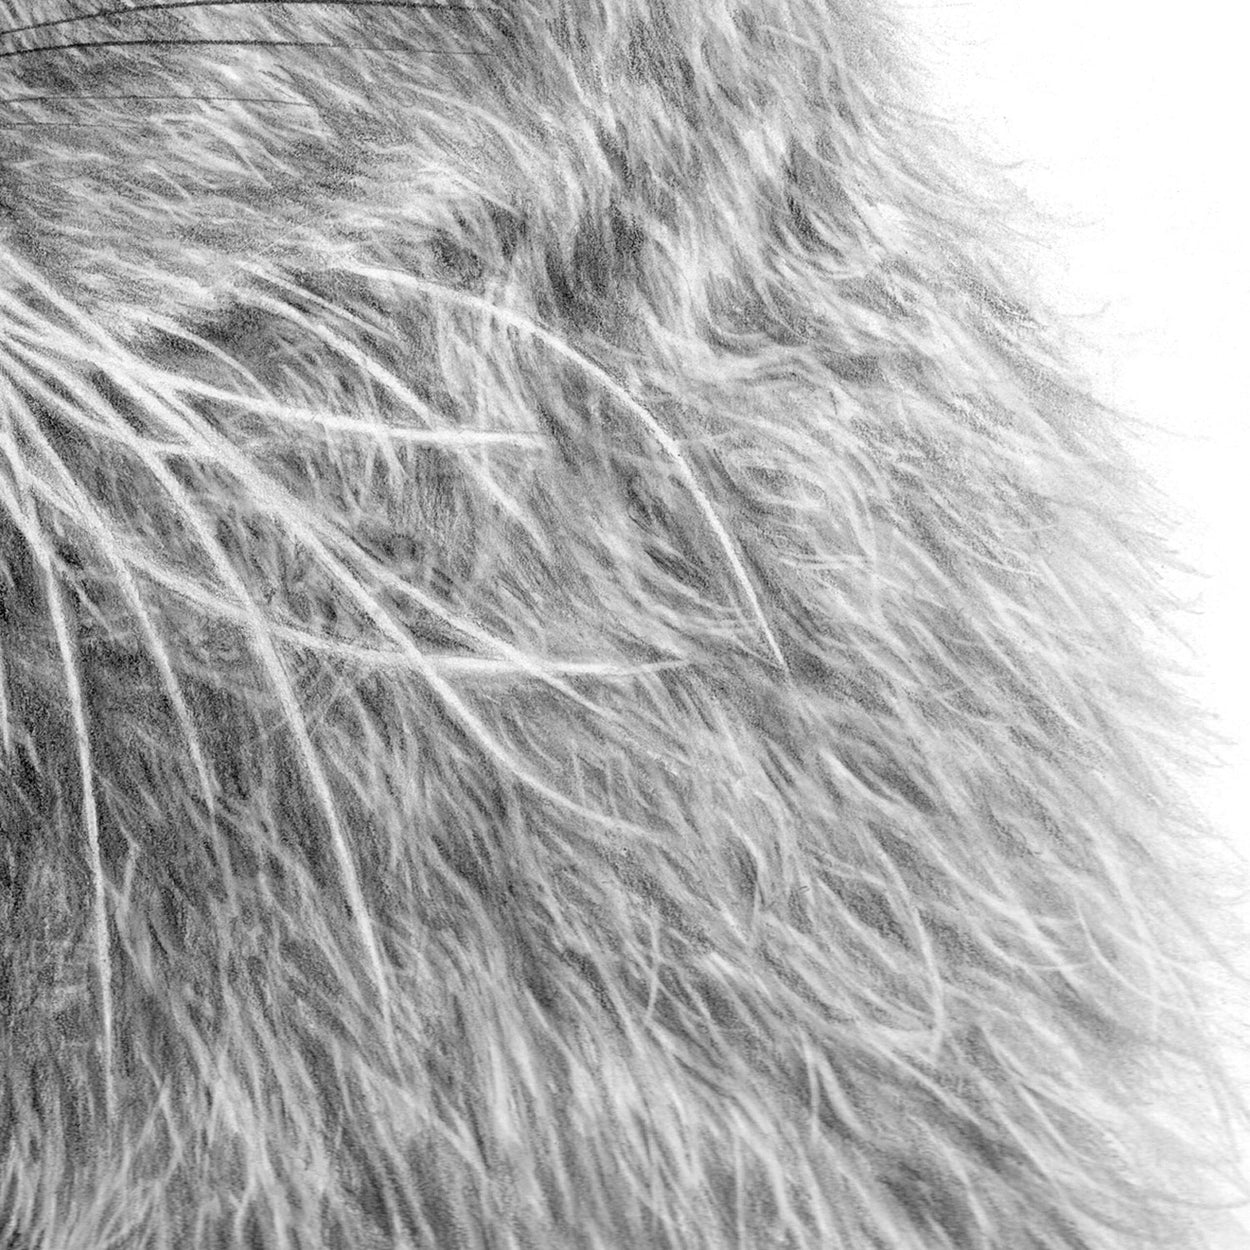 Hare Drawing -Close-up Fur - The Thriving Wild